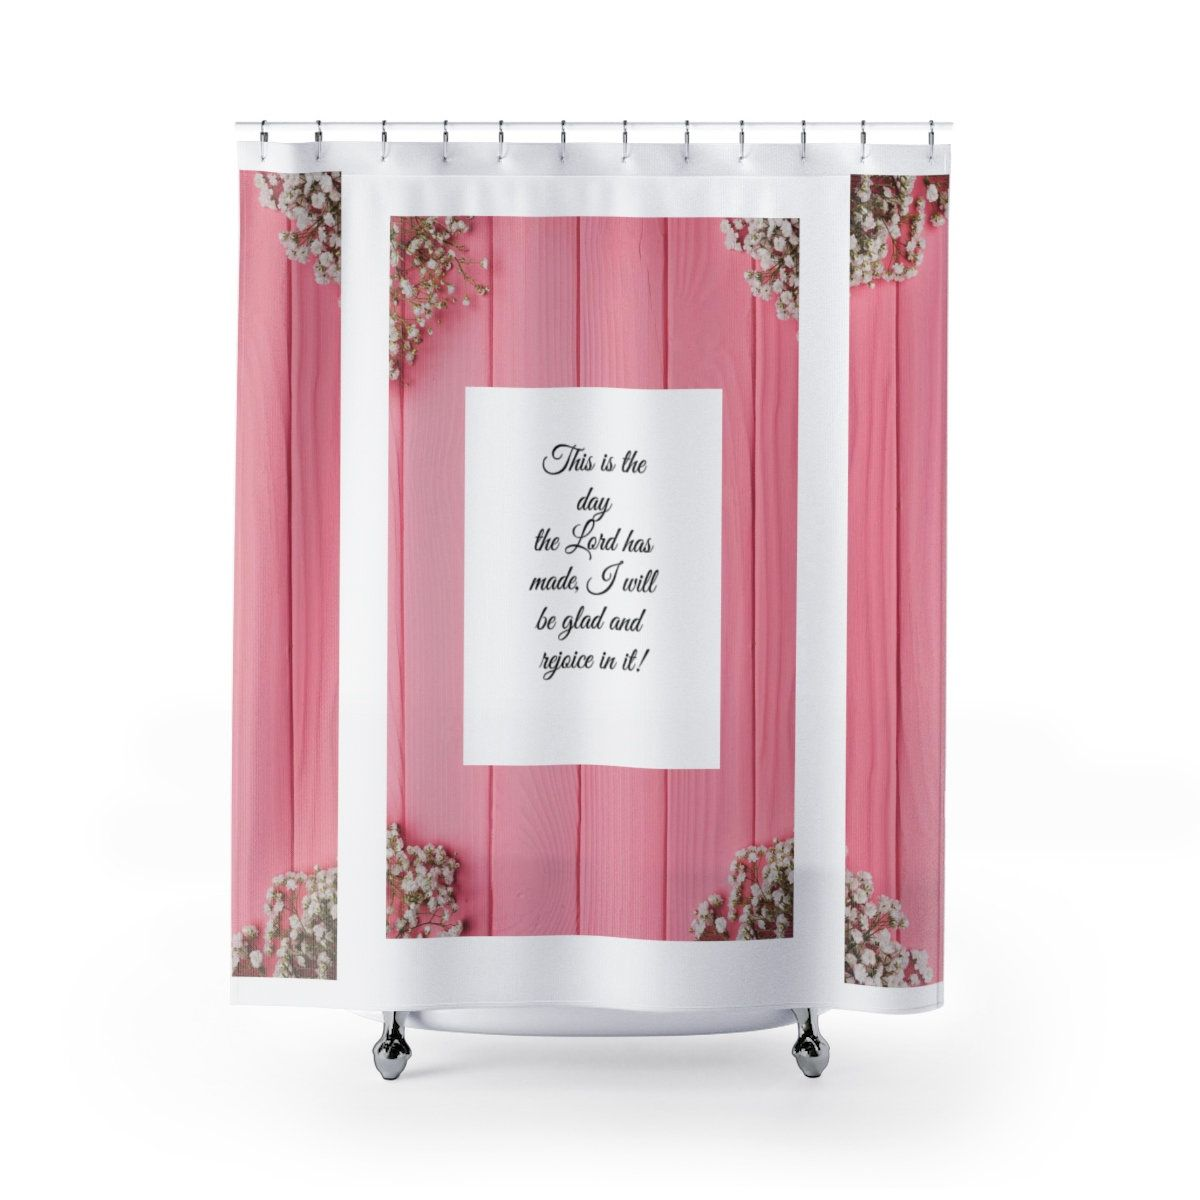 Scripture Shower Curtain Christian Shower Curtain Bible Verse